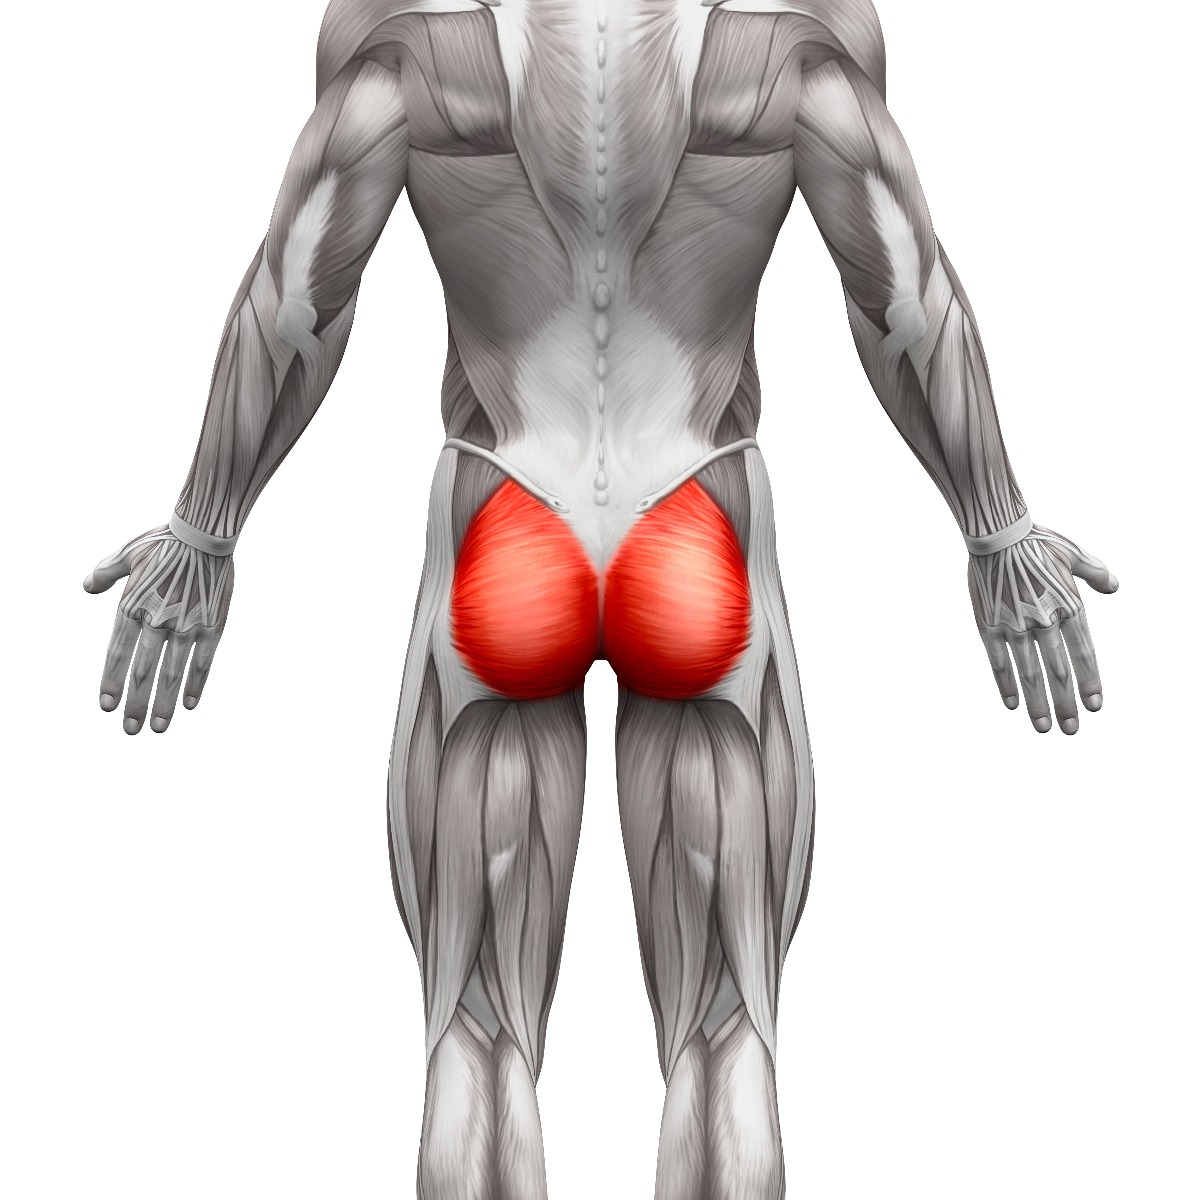 Rear anatomy view of glute muscles, highlighted in red